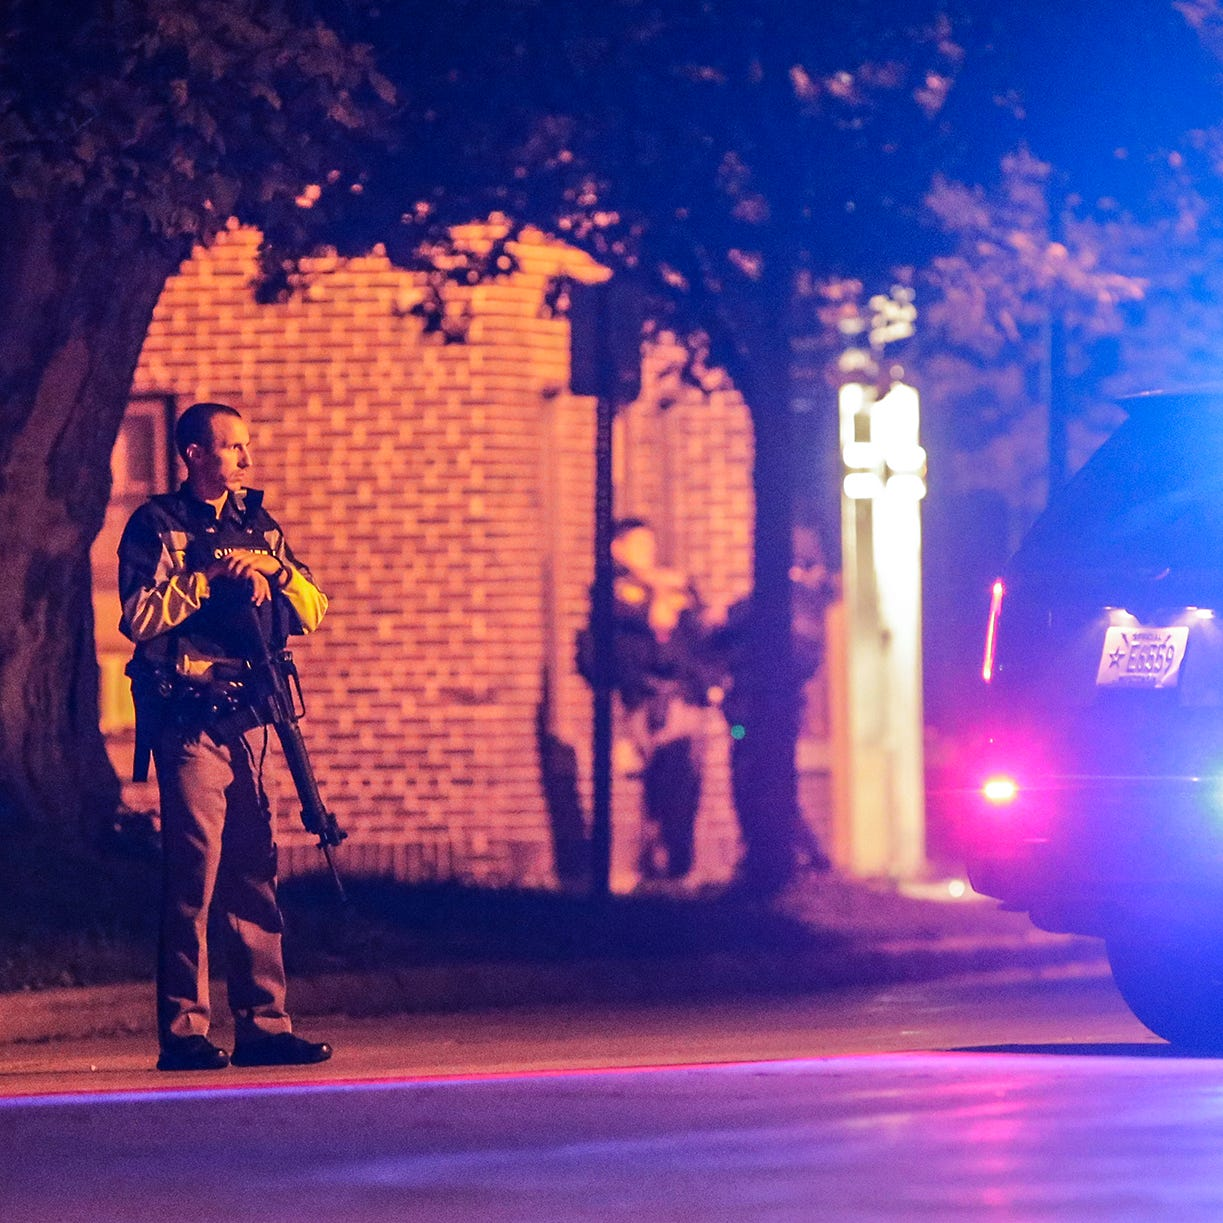 Person of interest in double shooting in custody in Fond du Lac County Jail